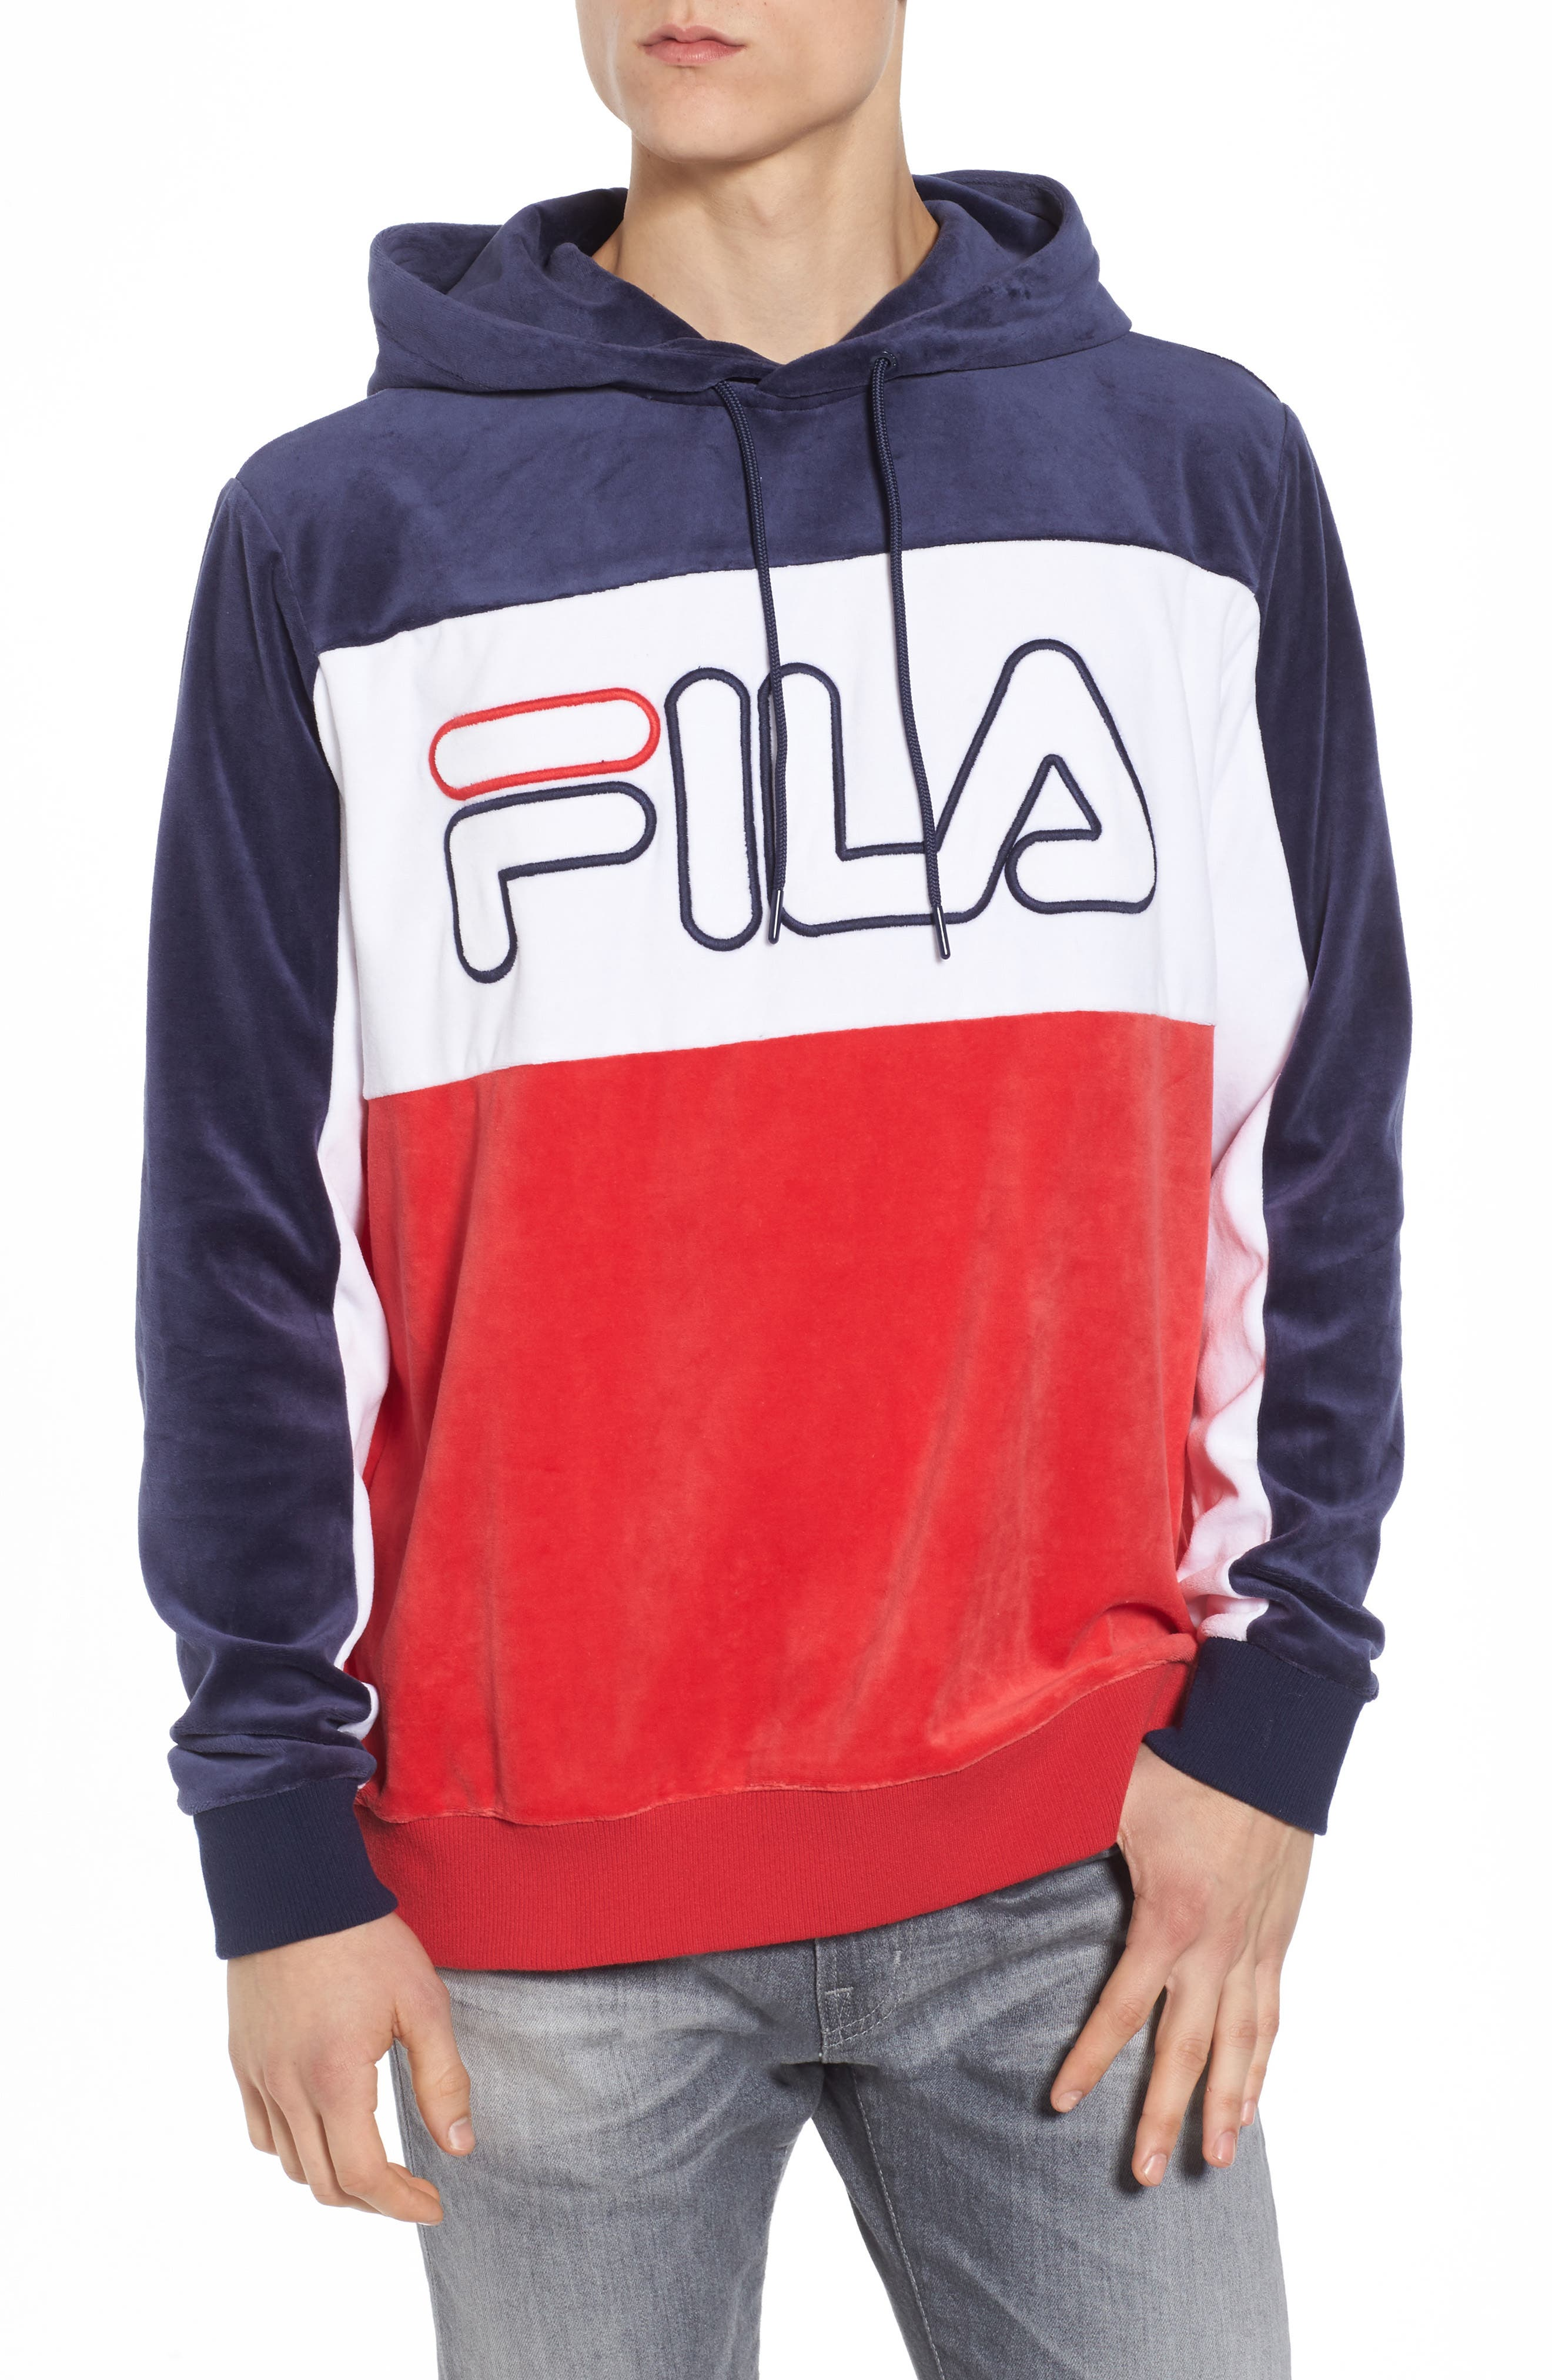 Baggio Velour Hoodie,                         Main,                         color, Navy/ White/ Red